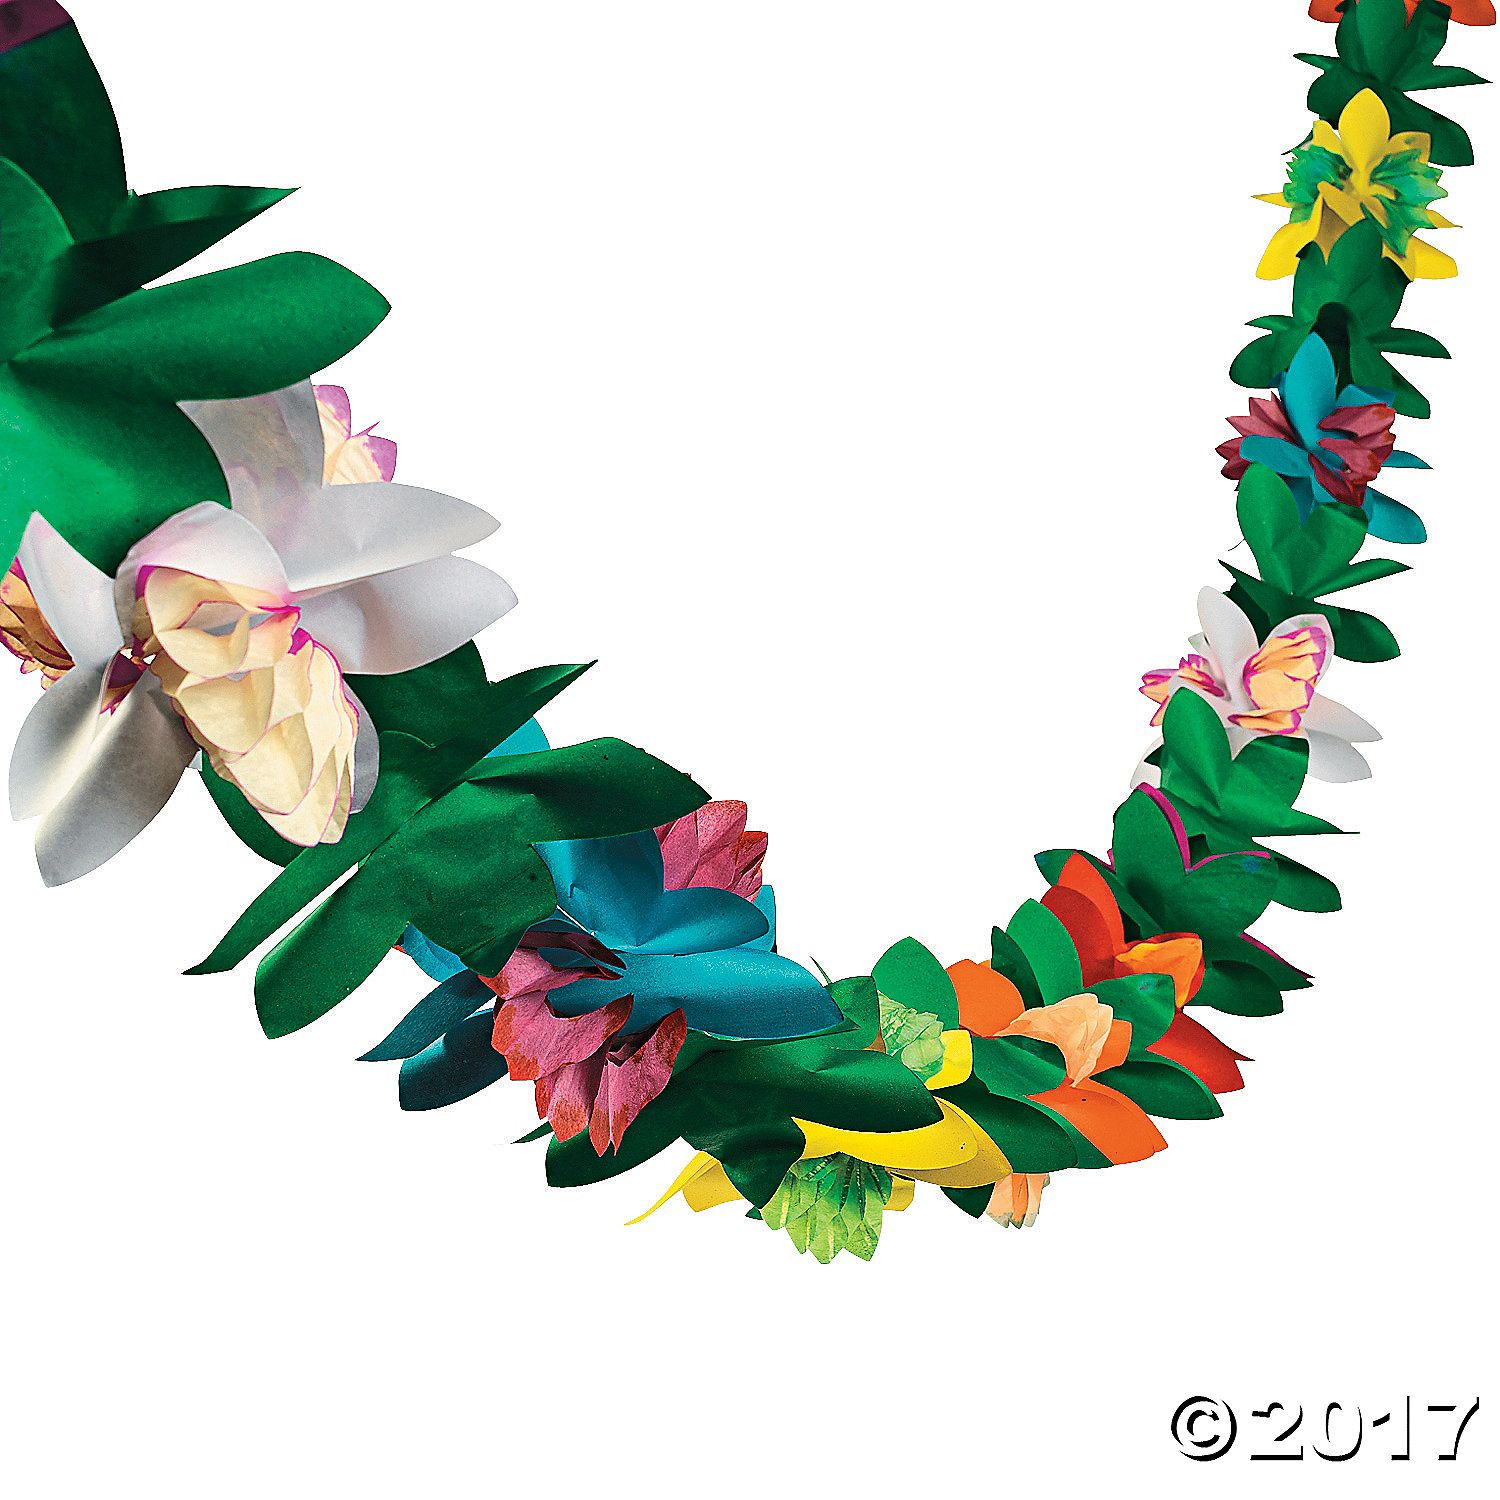 Colorful flower garland pinterest tissue garland luau and luau this bright tissue garland features flowers in tropical colors and makes a perfect accent for your luau or beach party decorate the buffet table frame a izmirmasajfo